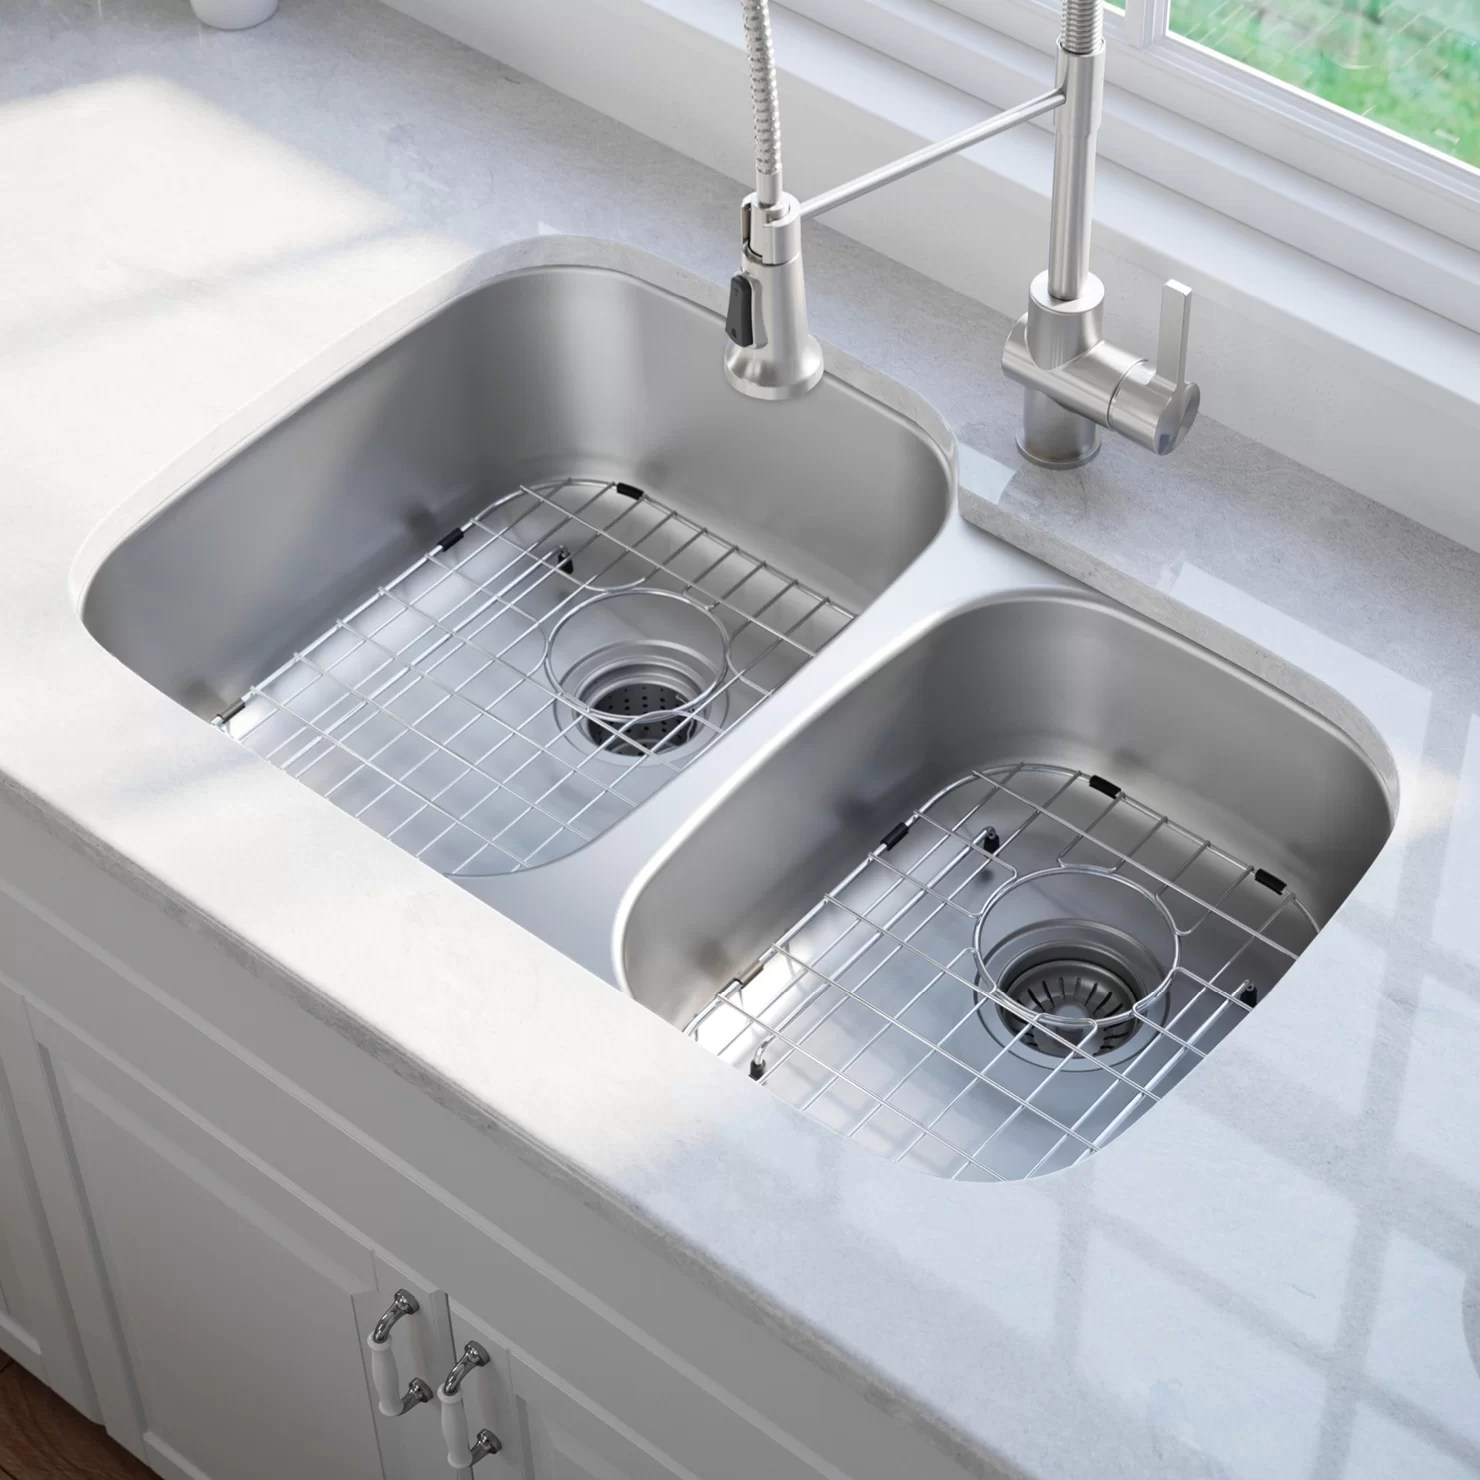 kraus kitchen sinks subway tile for kbu23 32 x 20 double basin undermount sink with noisedefend soundproofing